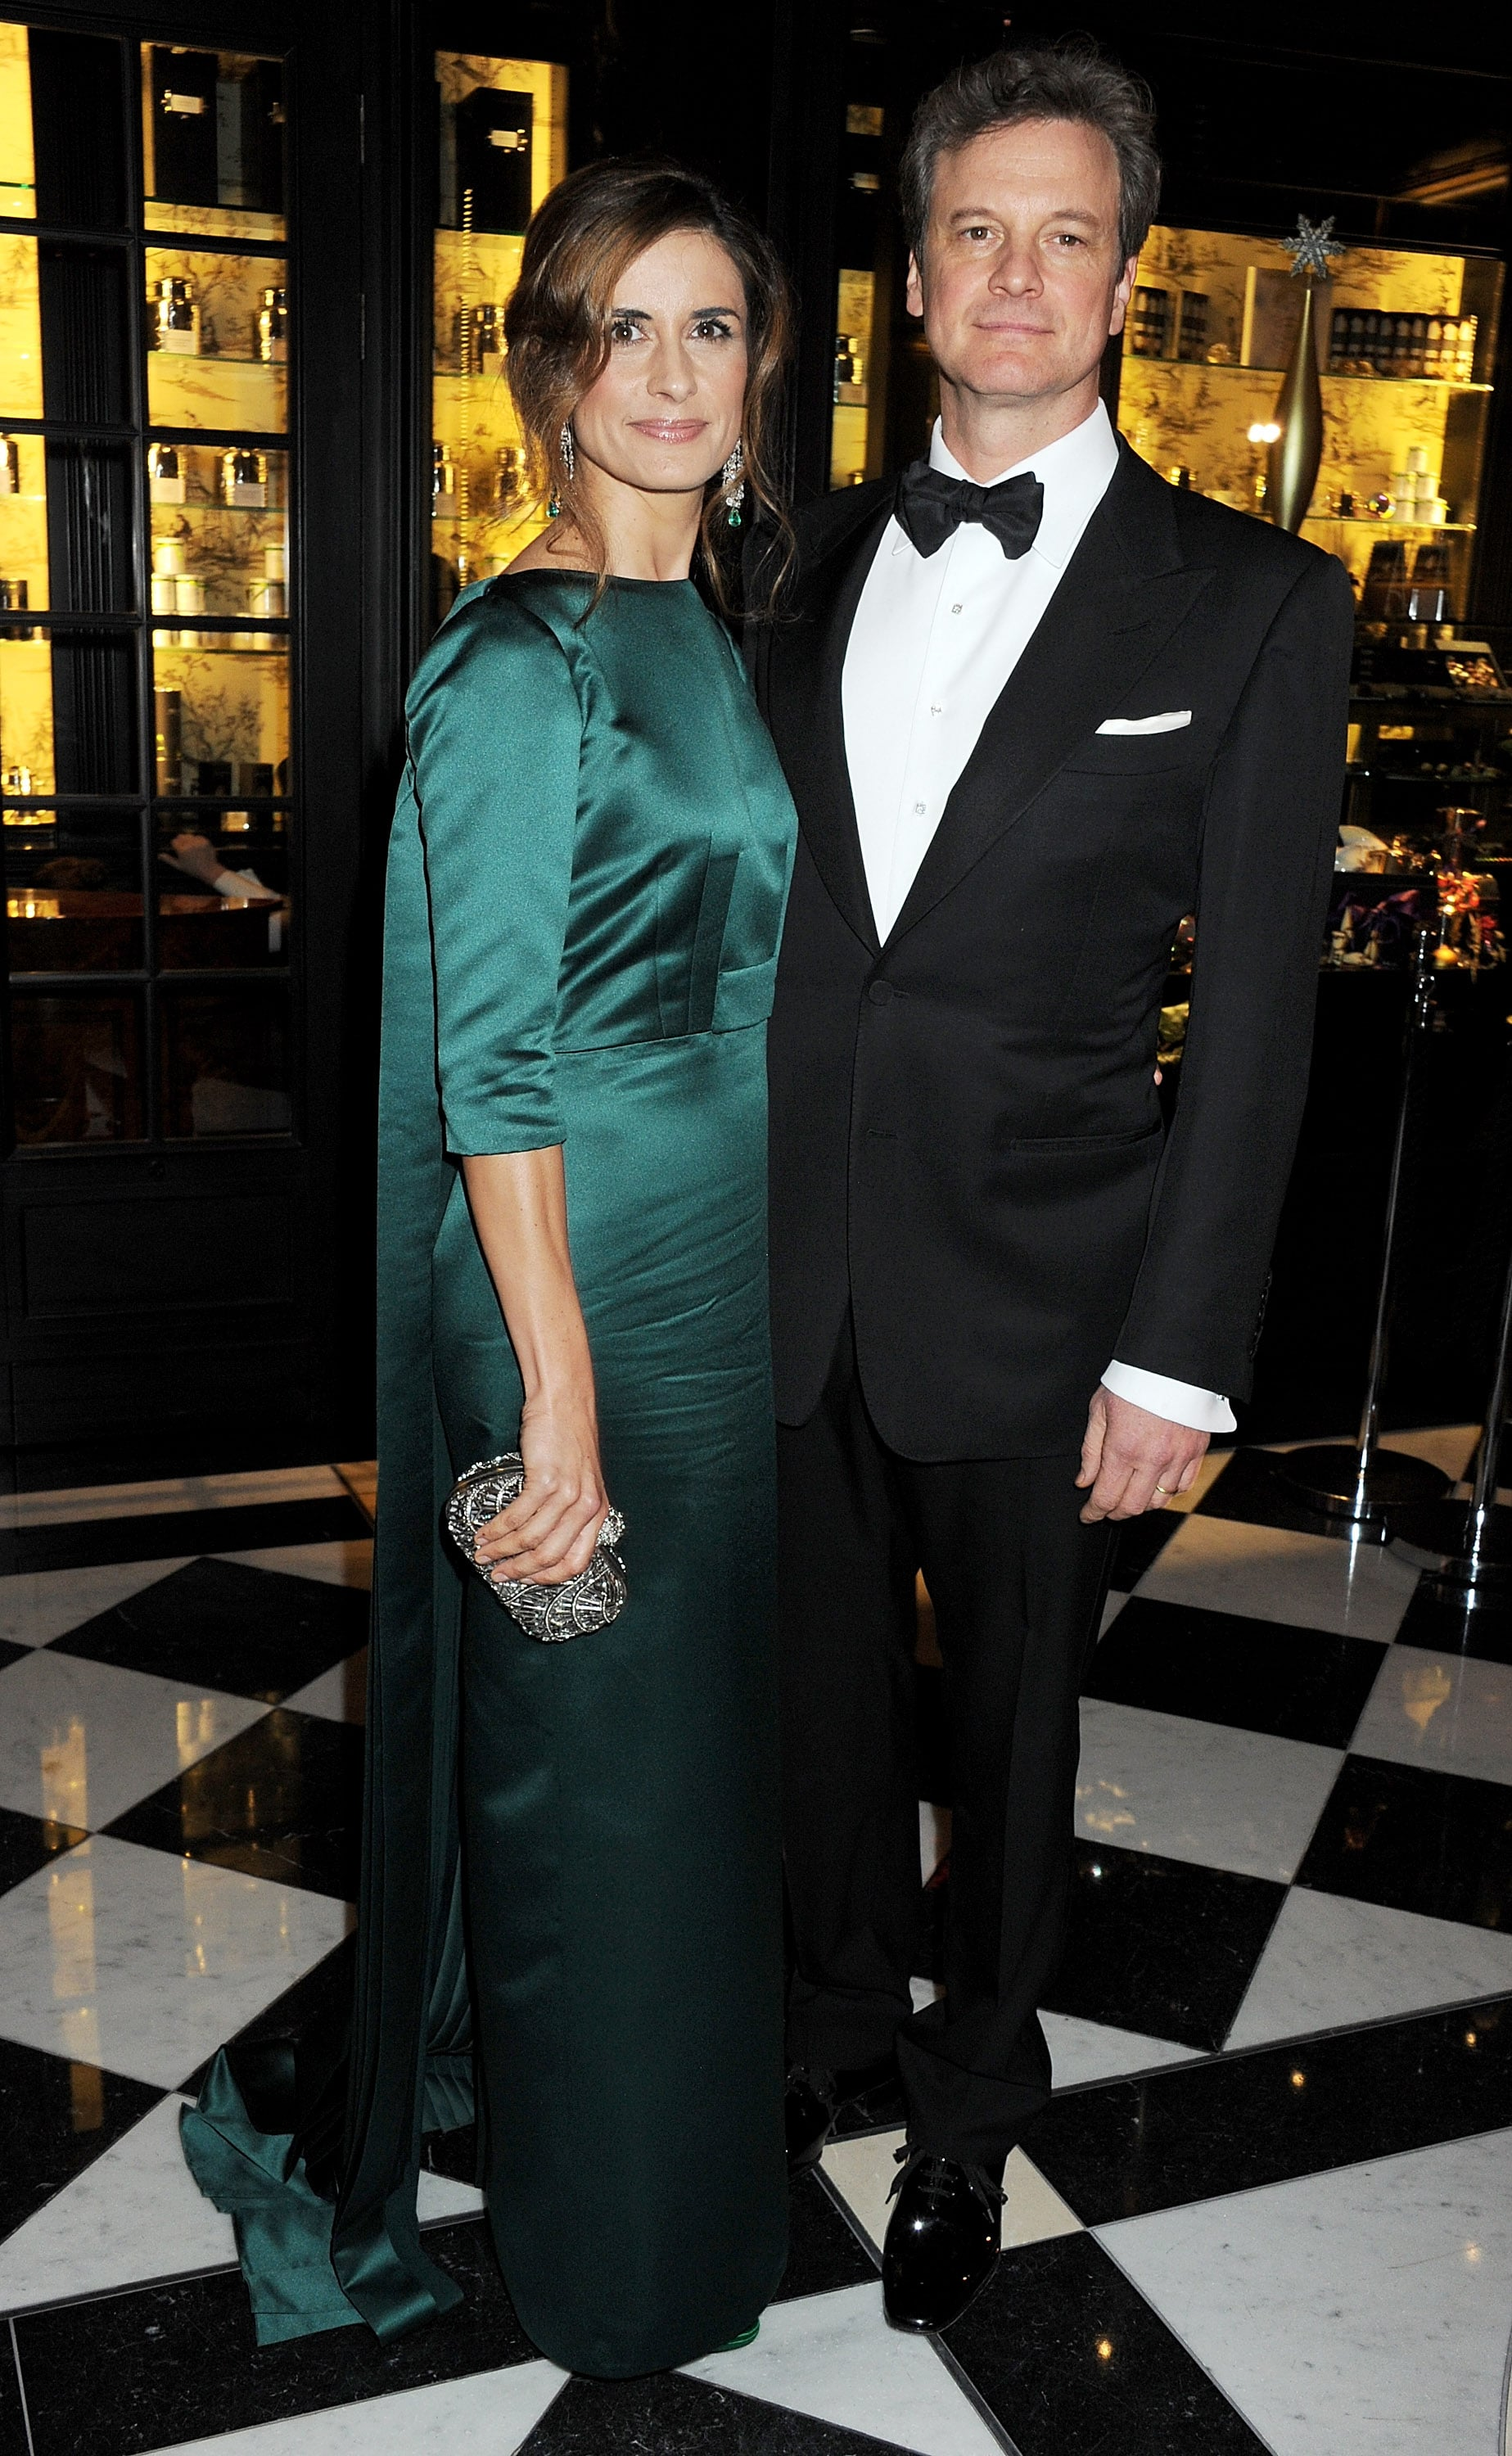 Colin Firth and his wife, Livia Giuggioli.